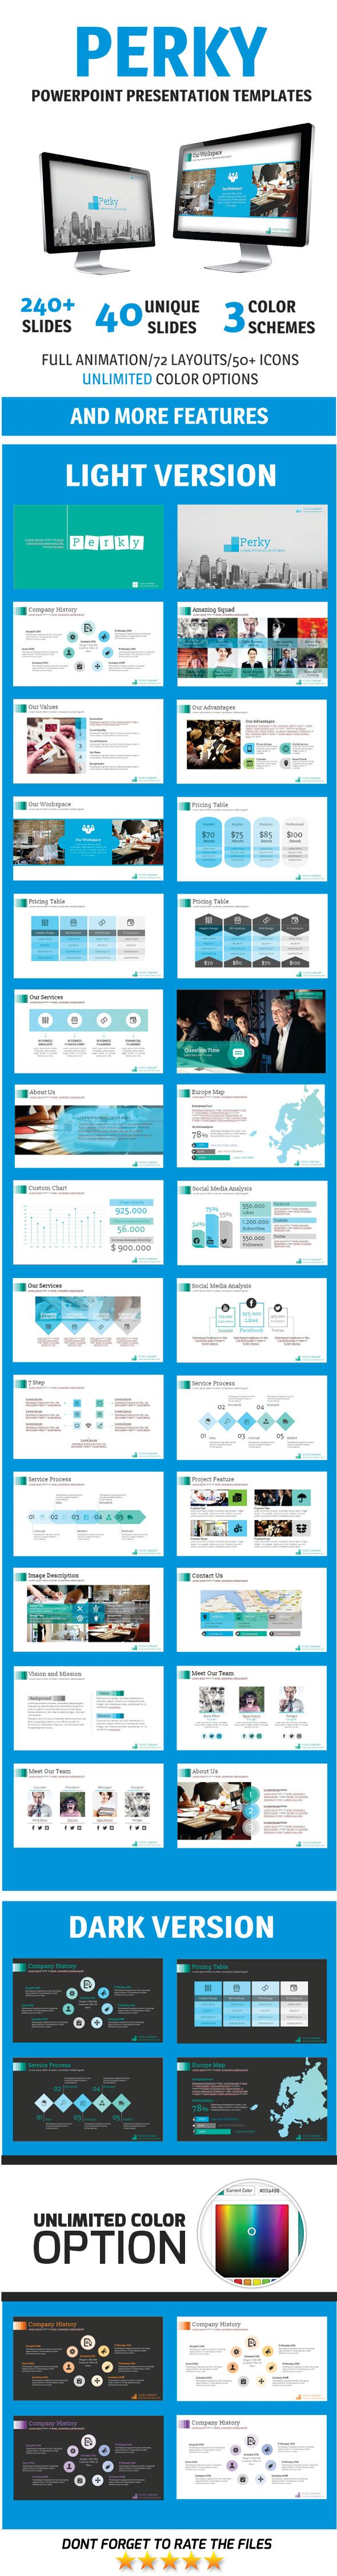 Perky PowerPoint Template